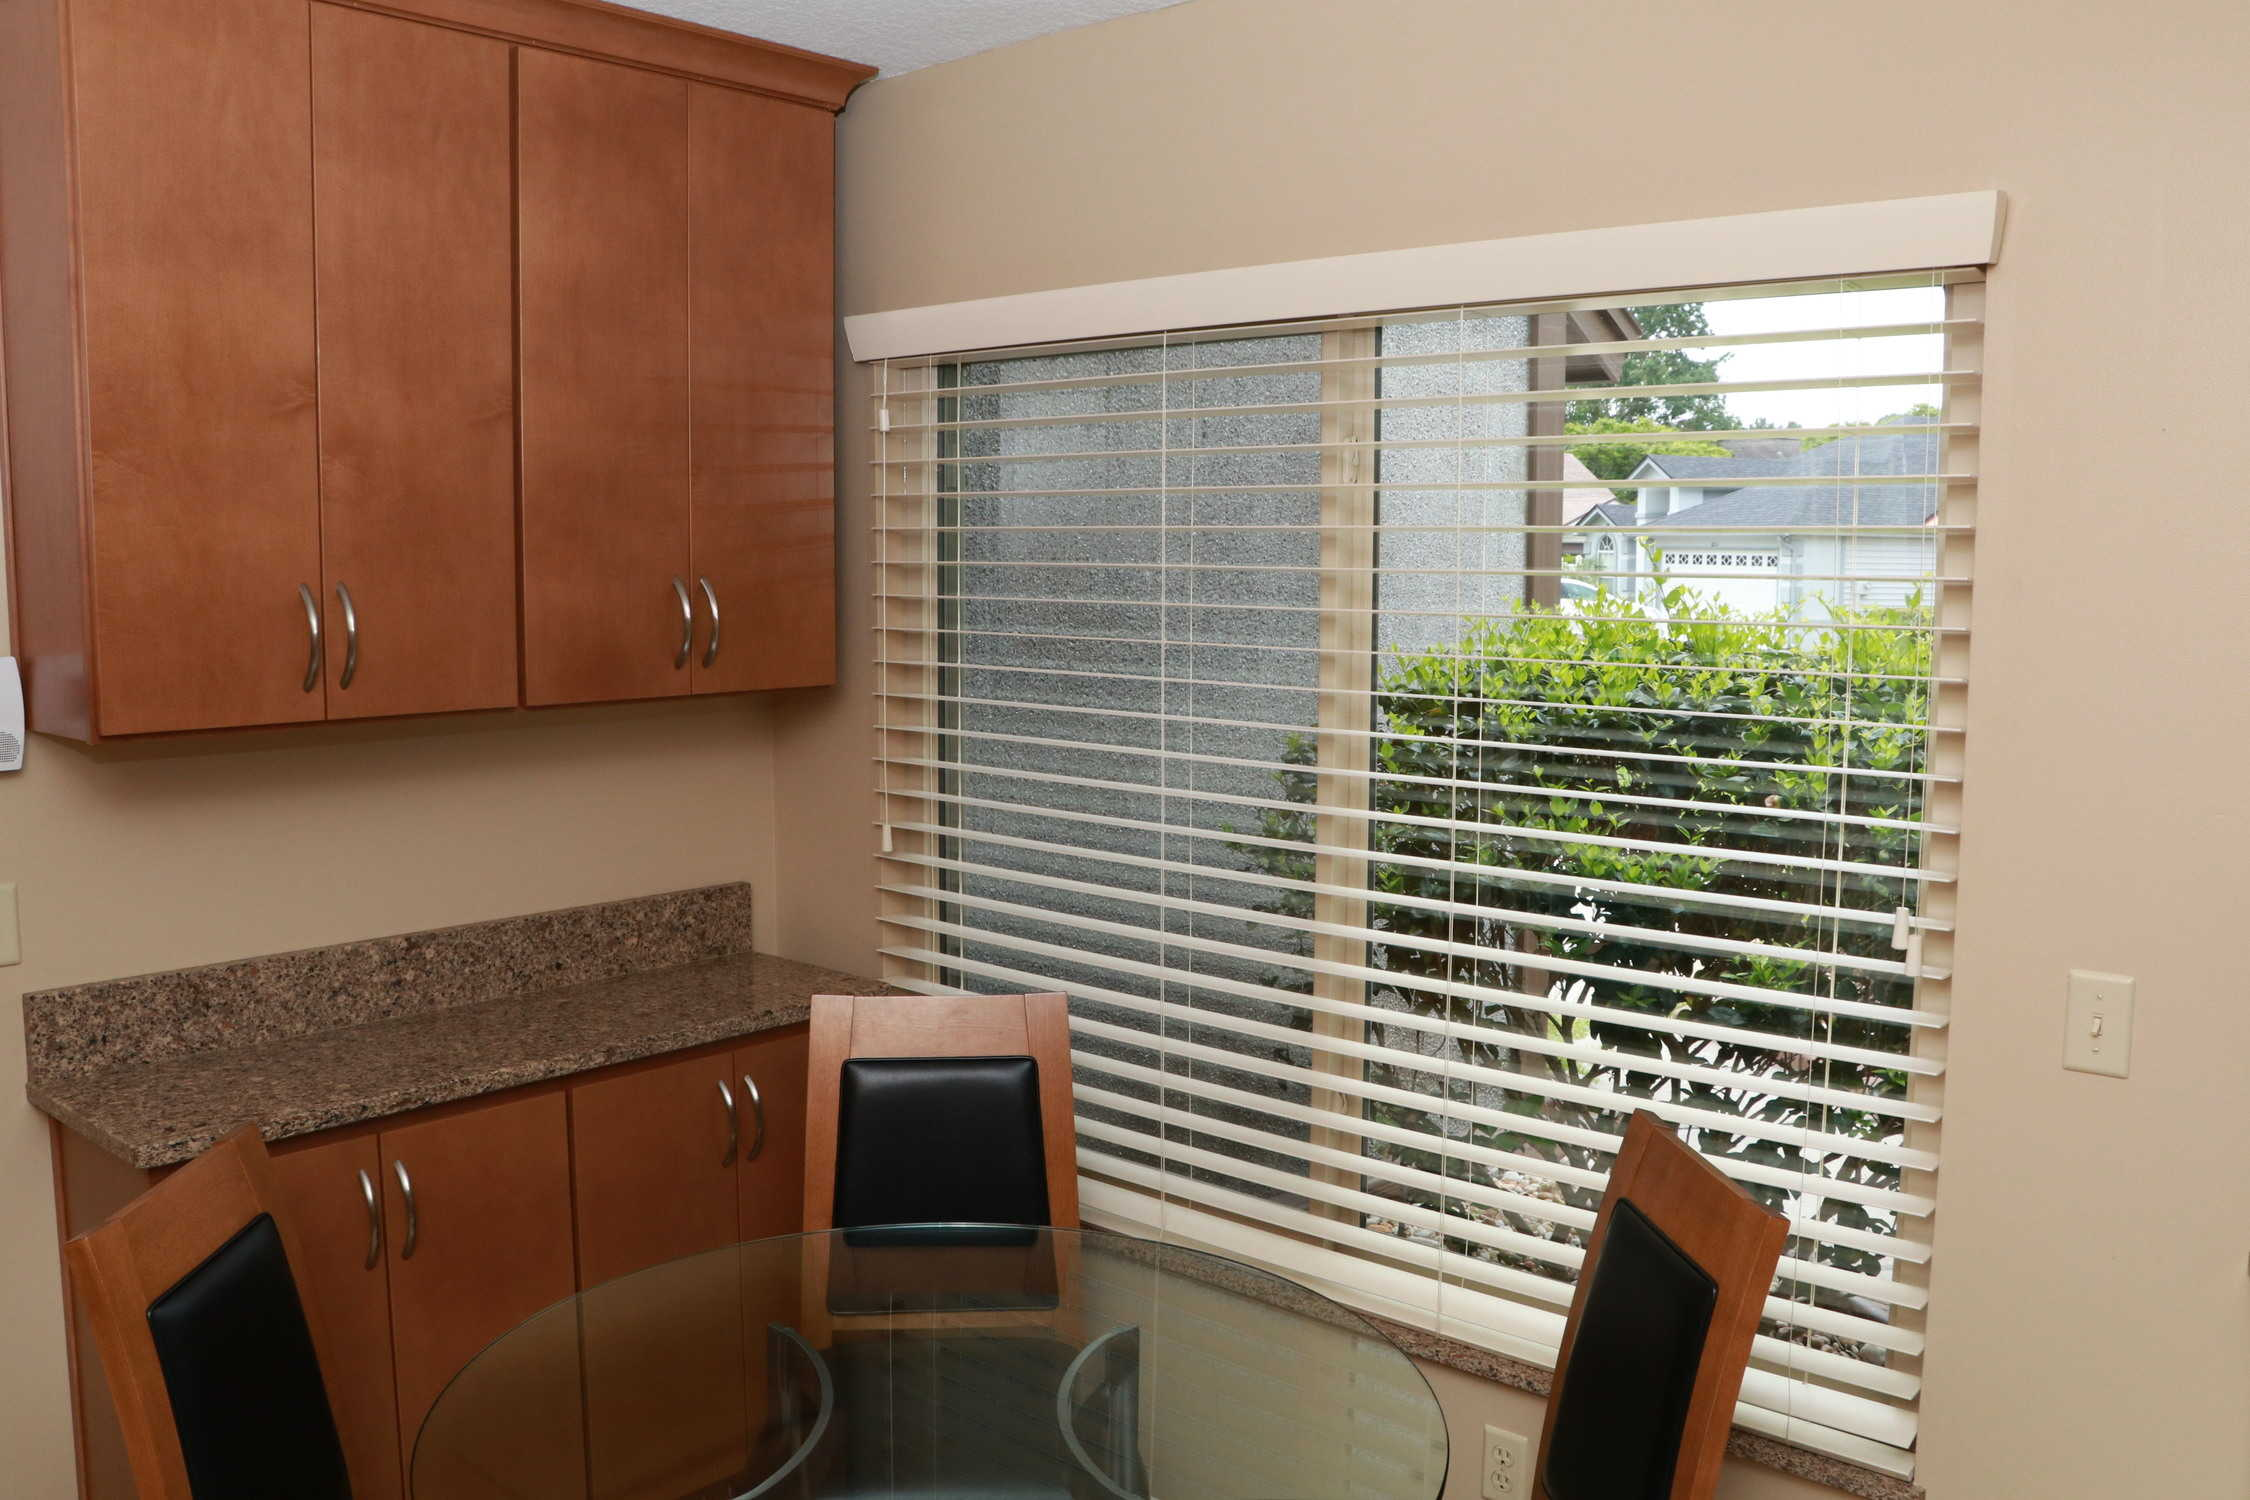 doors solar that blind custom can vertical pictures door shades blinds x front blindi covering treatment ideas design curtains to home patio in window regard sliding of fabric for size and hang with depot glass